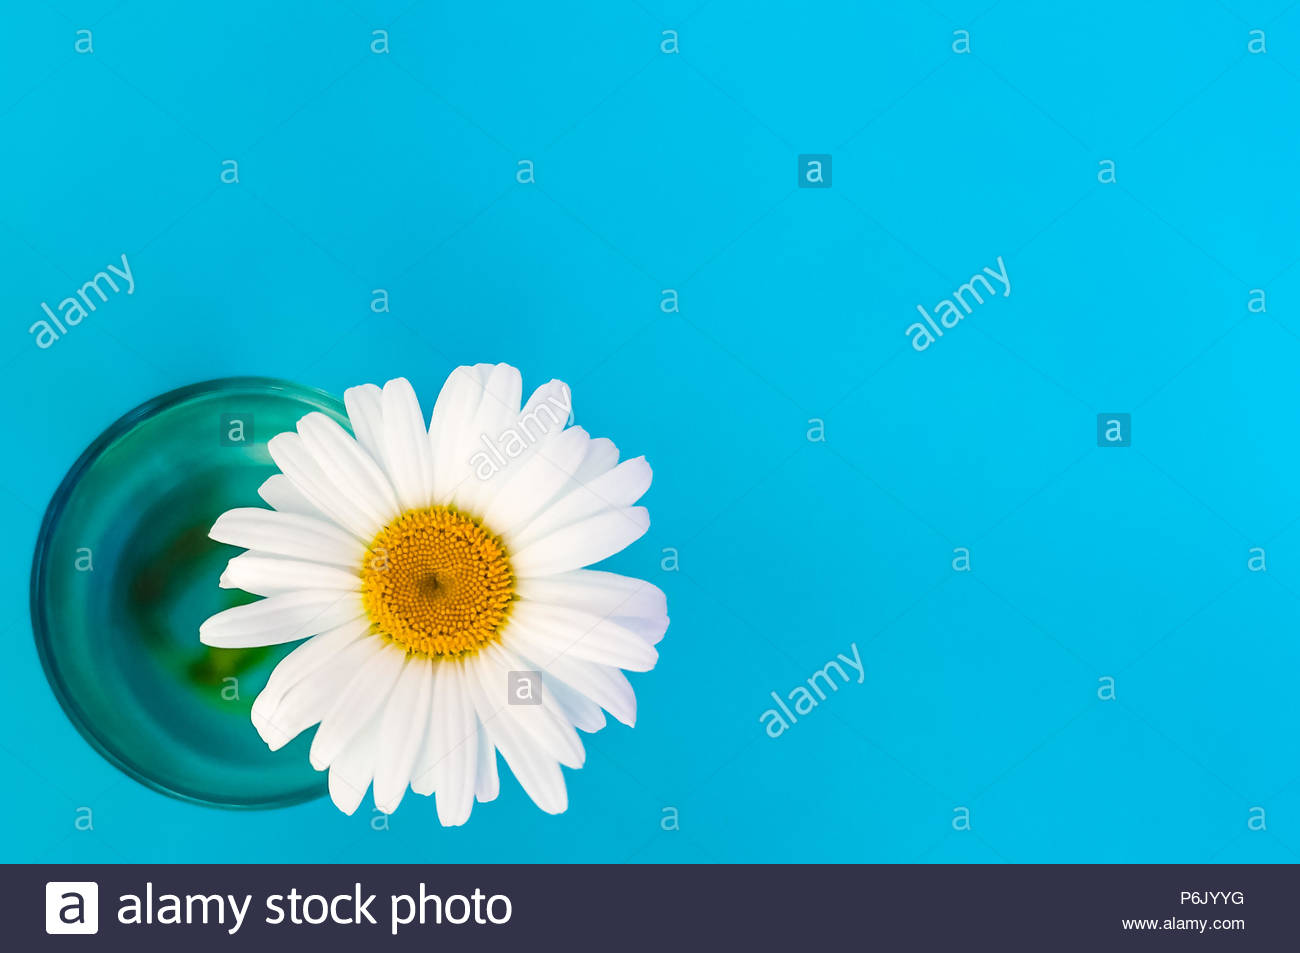 Chamomile flower in a glass on a blue background in the lower left 1300x953